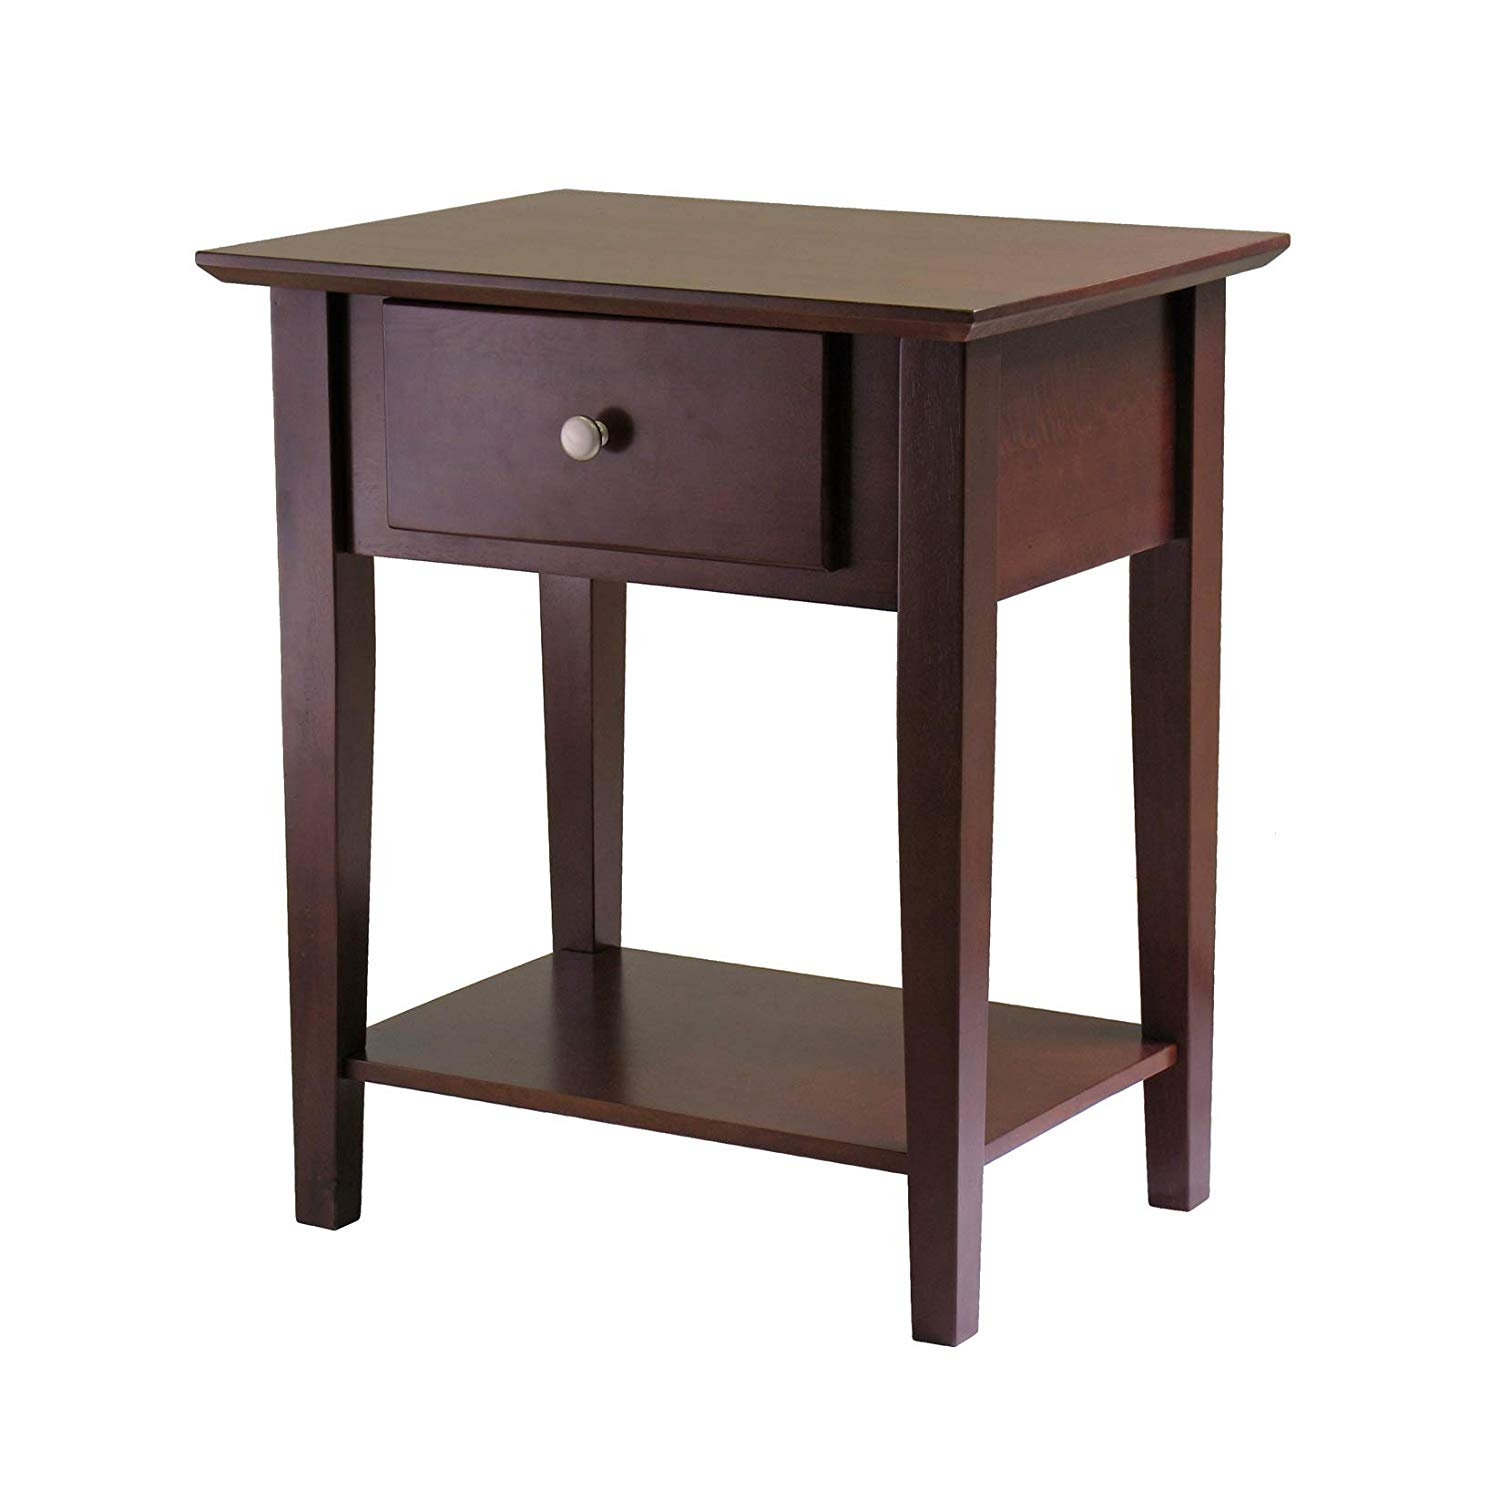 winsome wood shaker accent table antique walnut blue kitchen dining extendable patio mirrored console the living room furniture elm industrial couch wire side target retractable